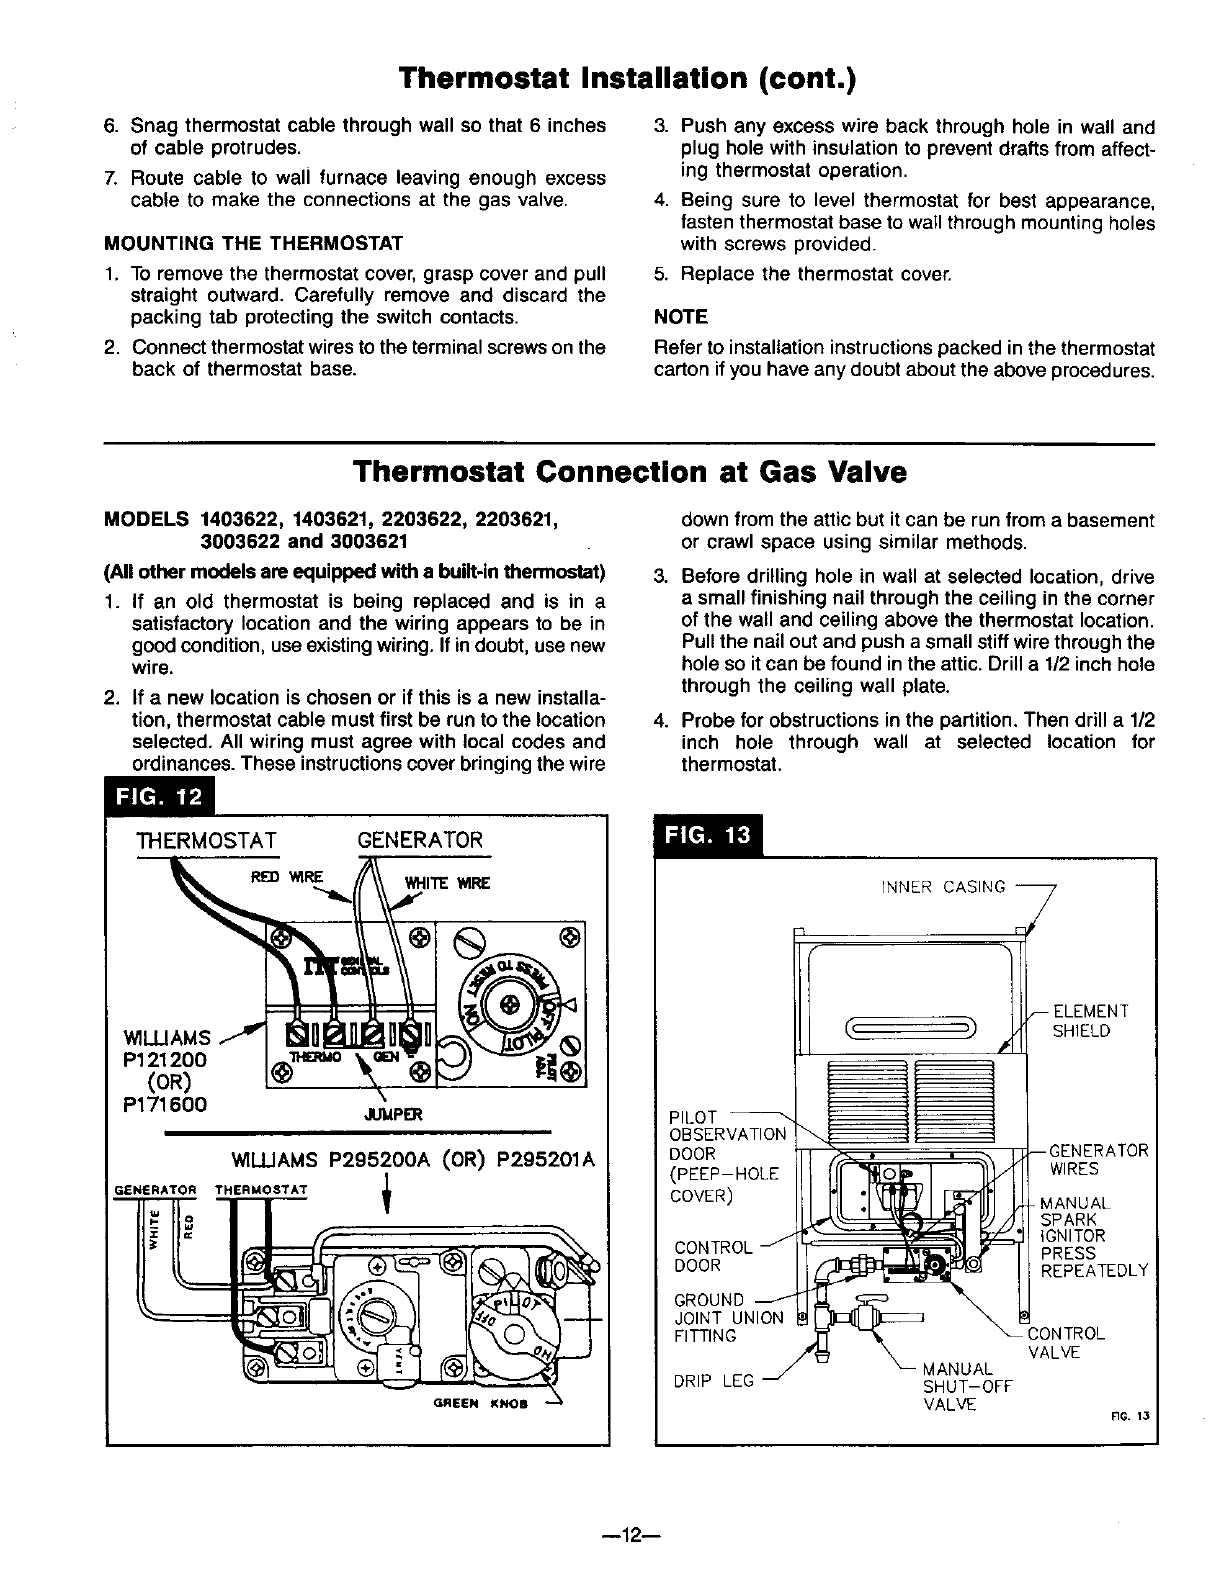 Wall Furnace Gas Valve Wiring - Maxon Bmr Wiring Diagram -  bathroom-vents.yenpancane.jeanjaures37.fr | Williams Wall Furnace Control Wiring Diagram |  | Wiring Diagram Resource